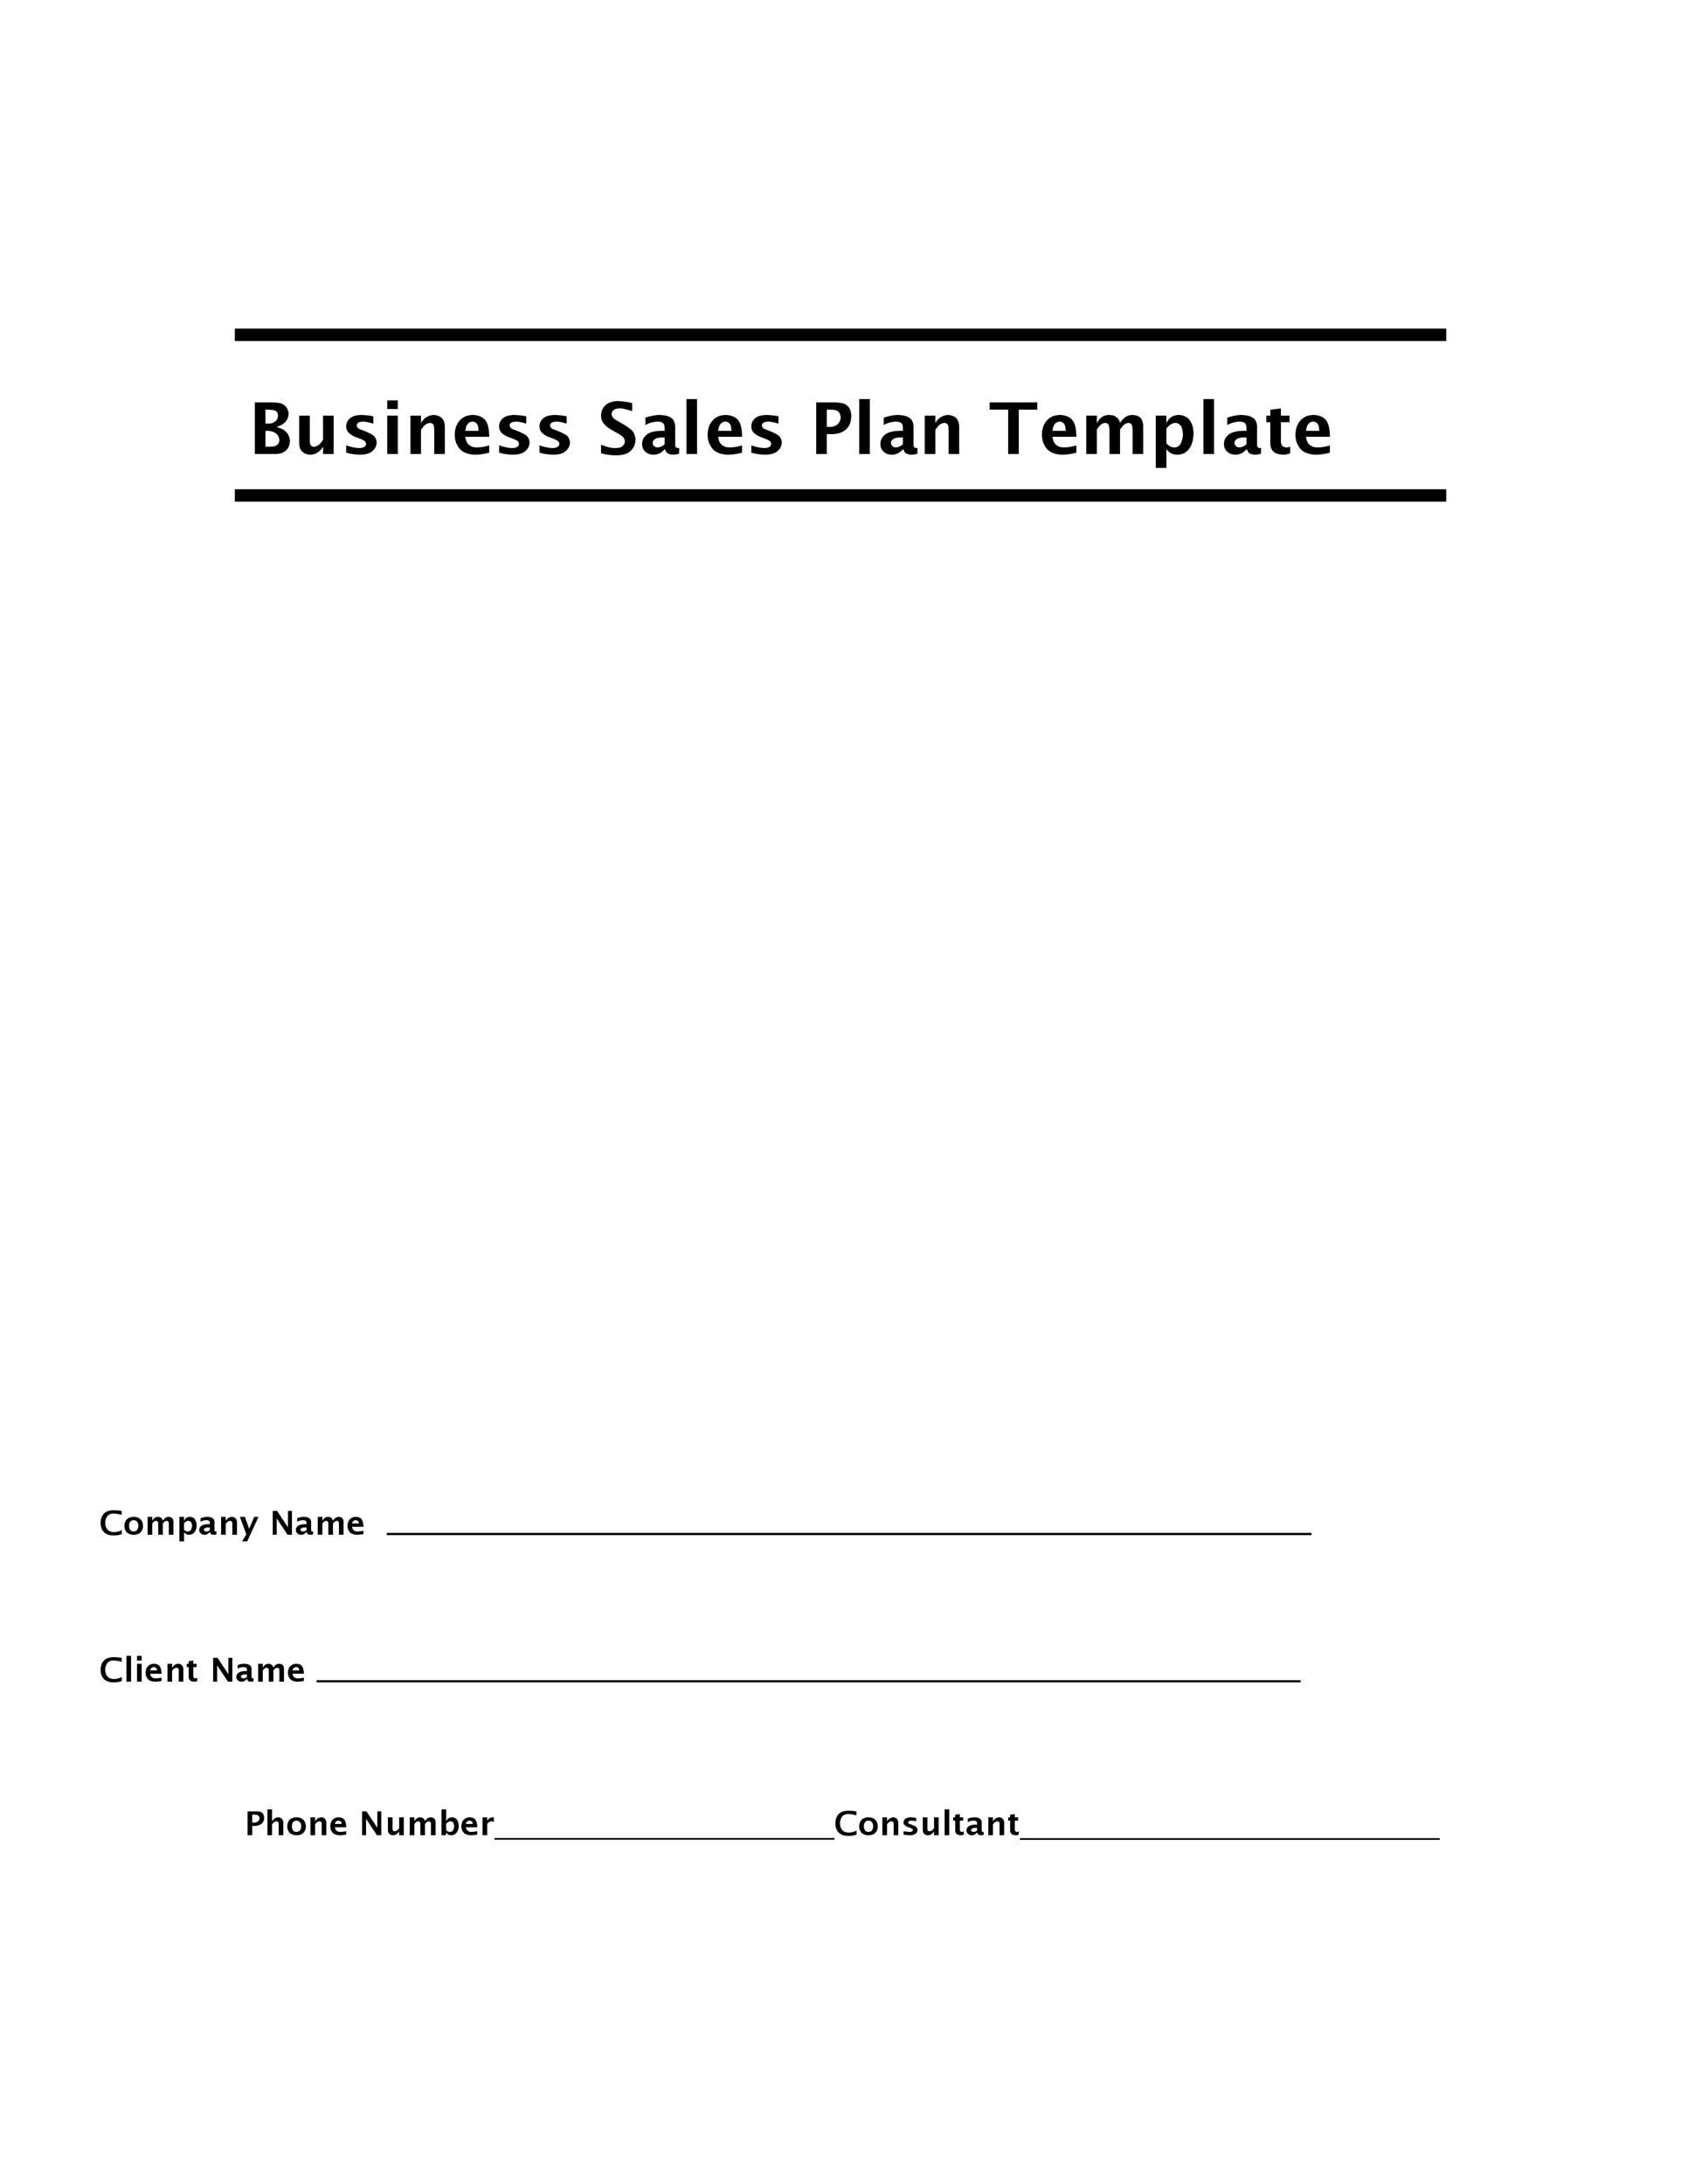 Free Sales Plan Template 25